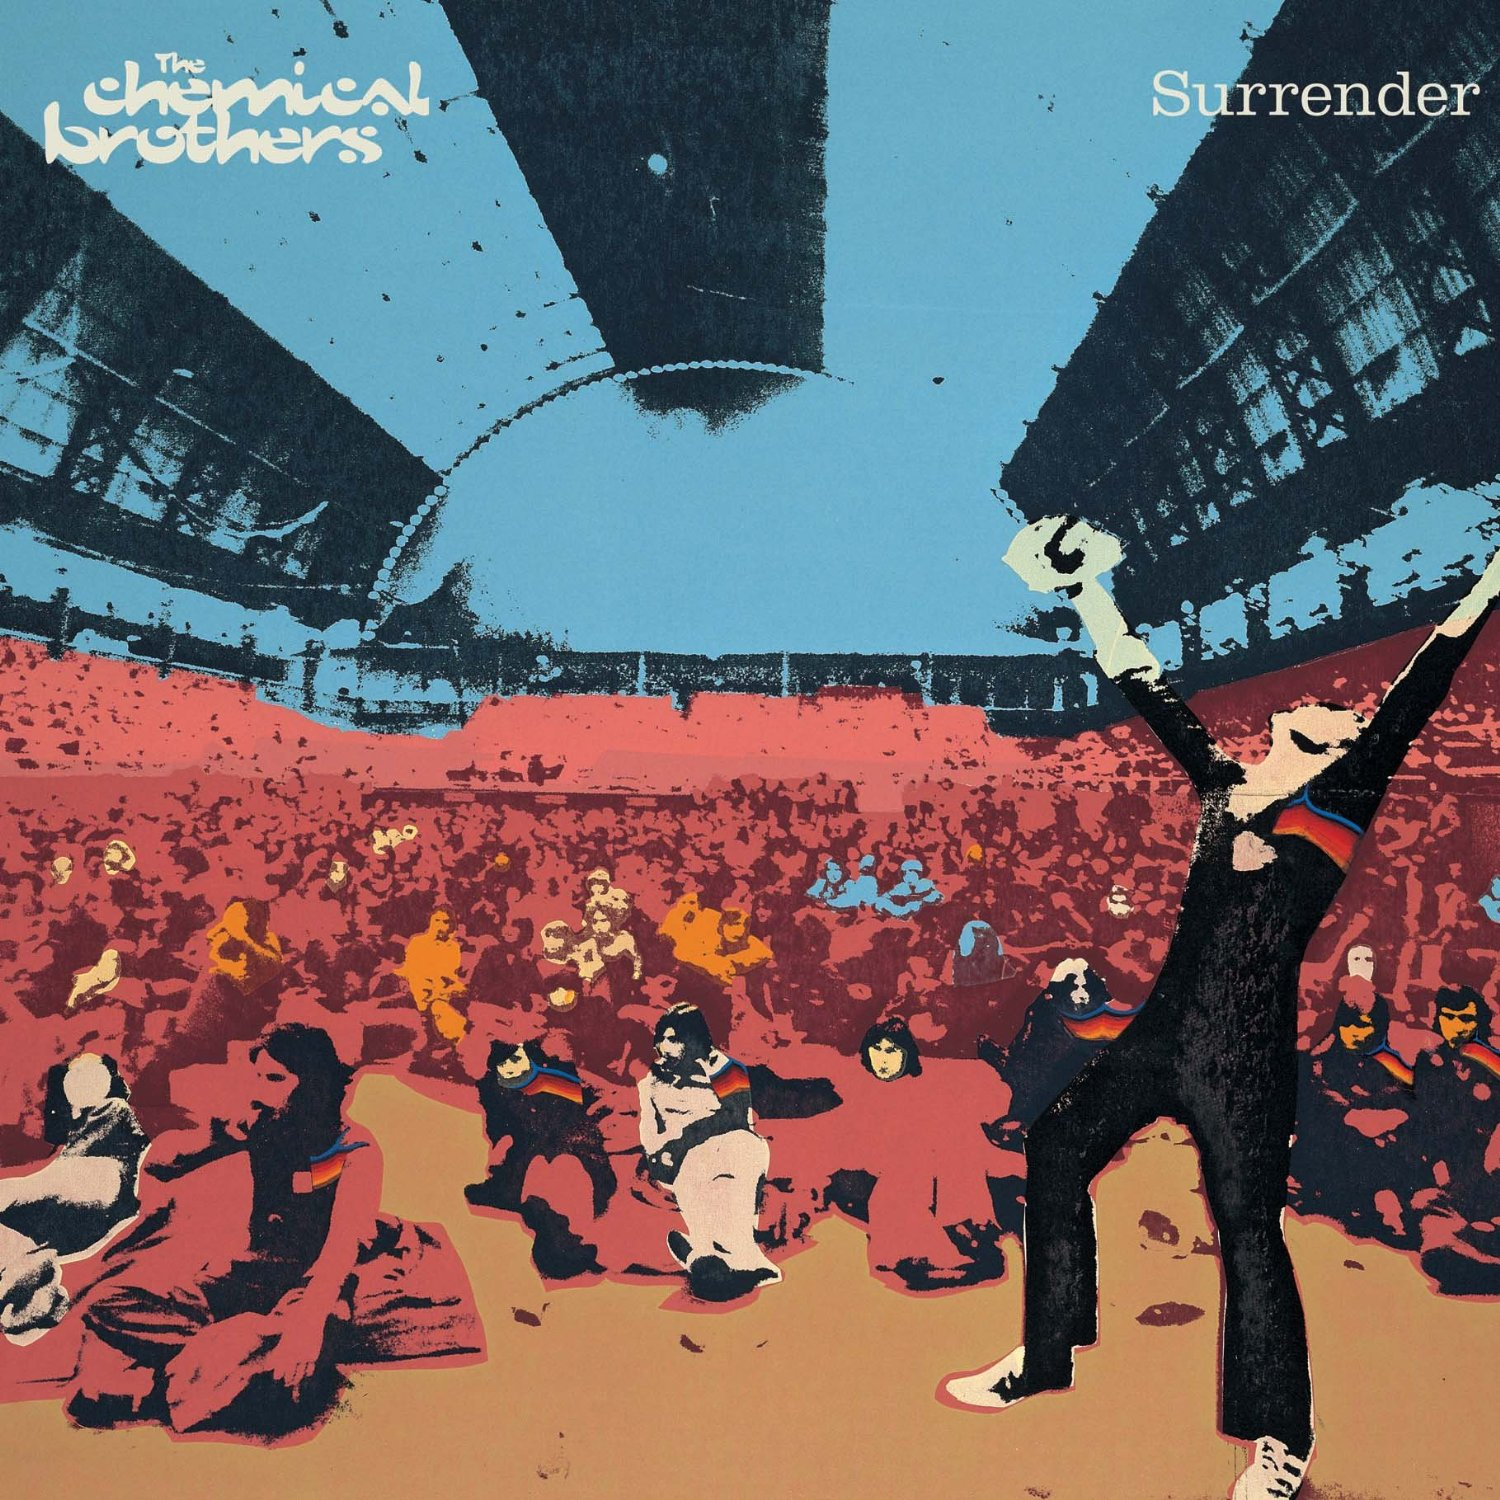 Surrender [2 LP][Reissue] by Astralwerks